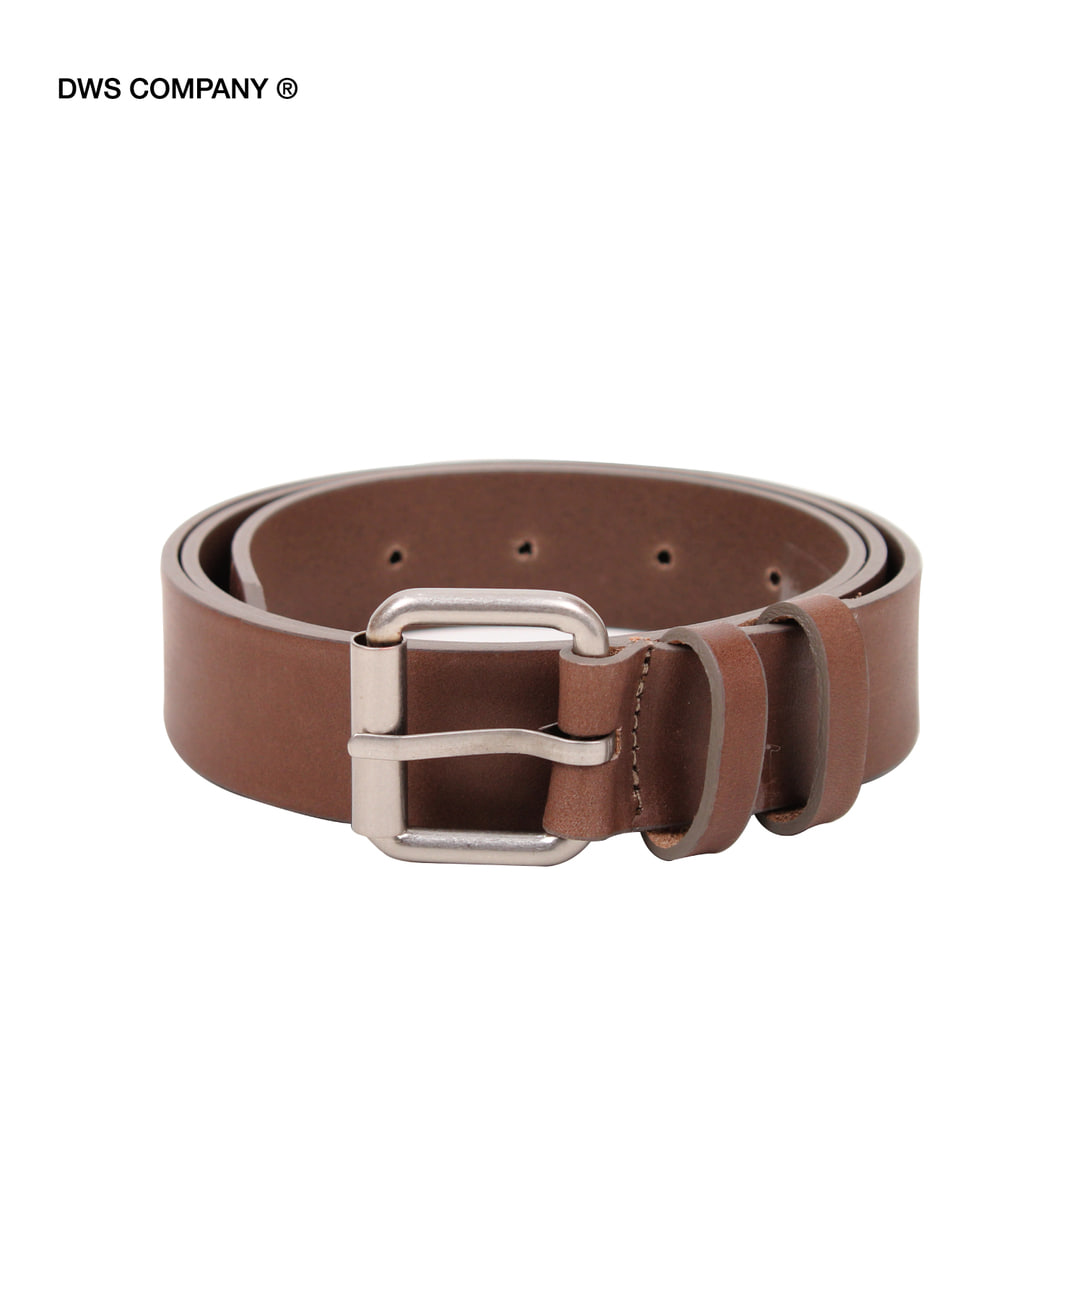 DWS ROLLING LEATHER BELT(MOCHA)